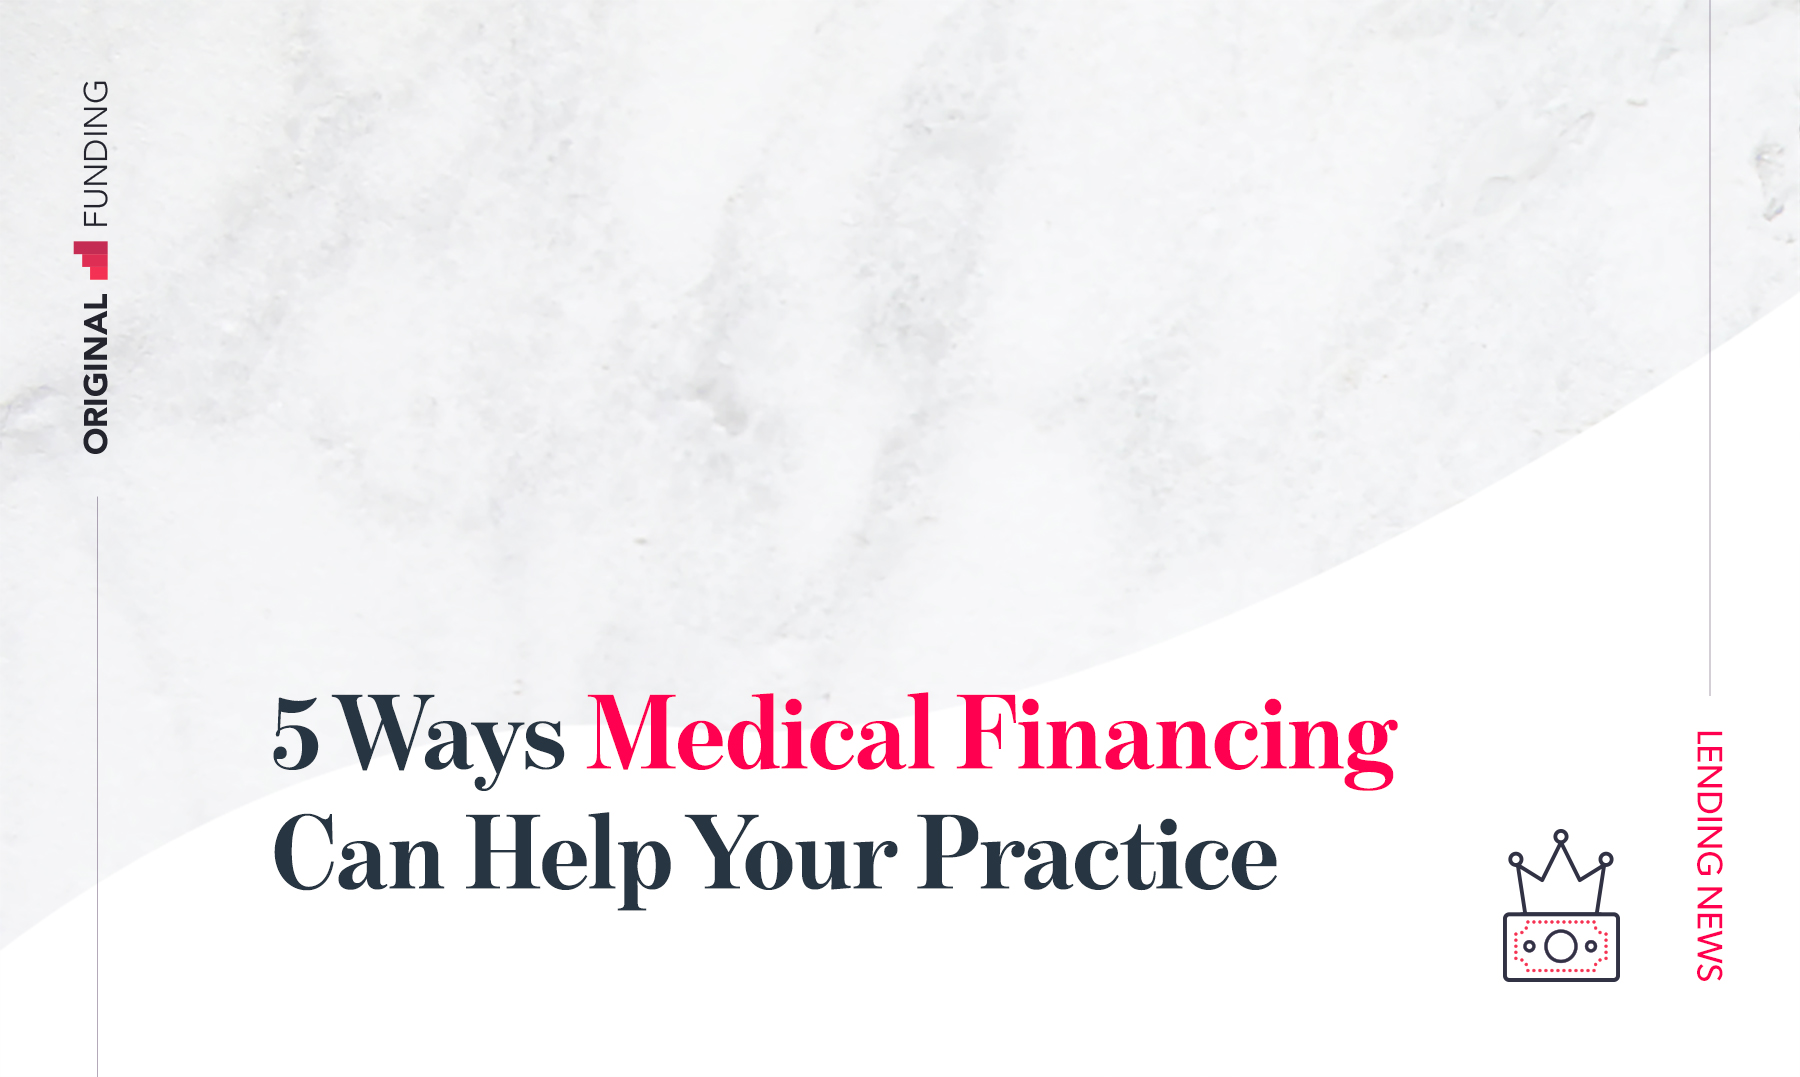 5 Ways Medical Financing Can Help Your Practice